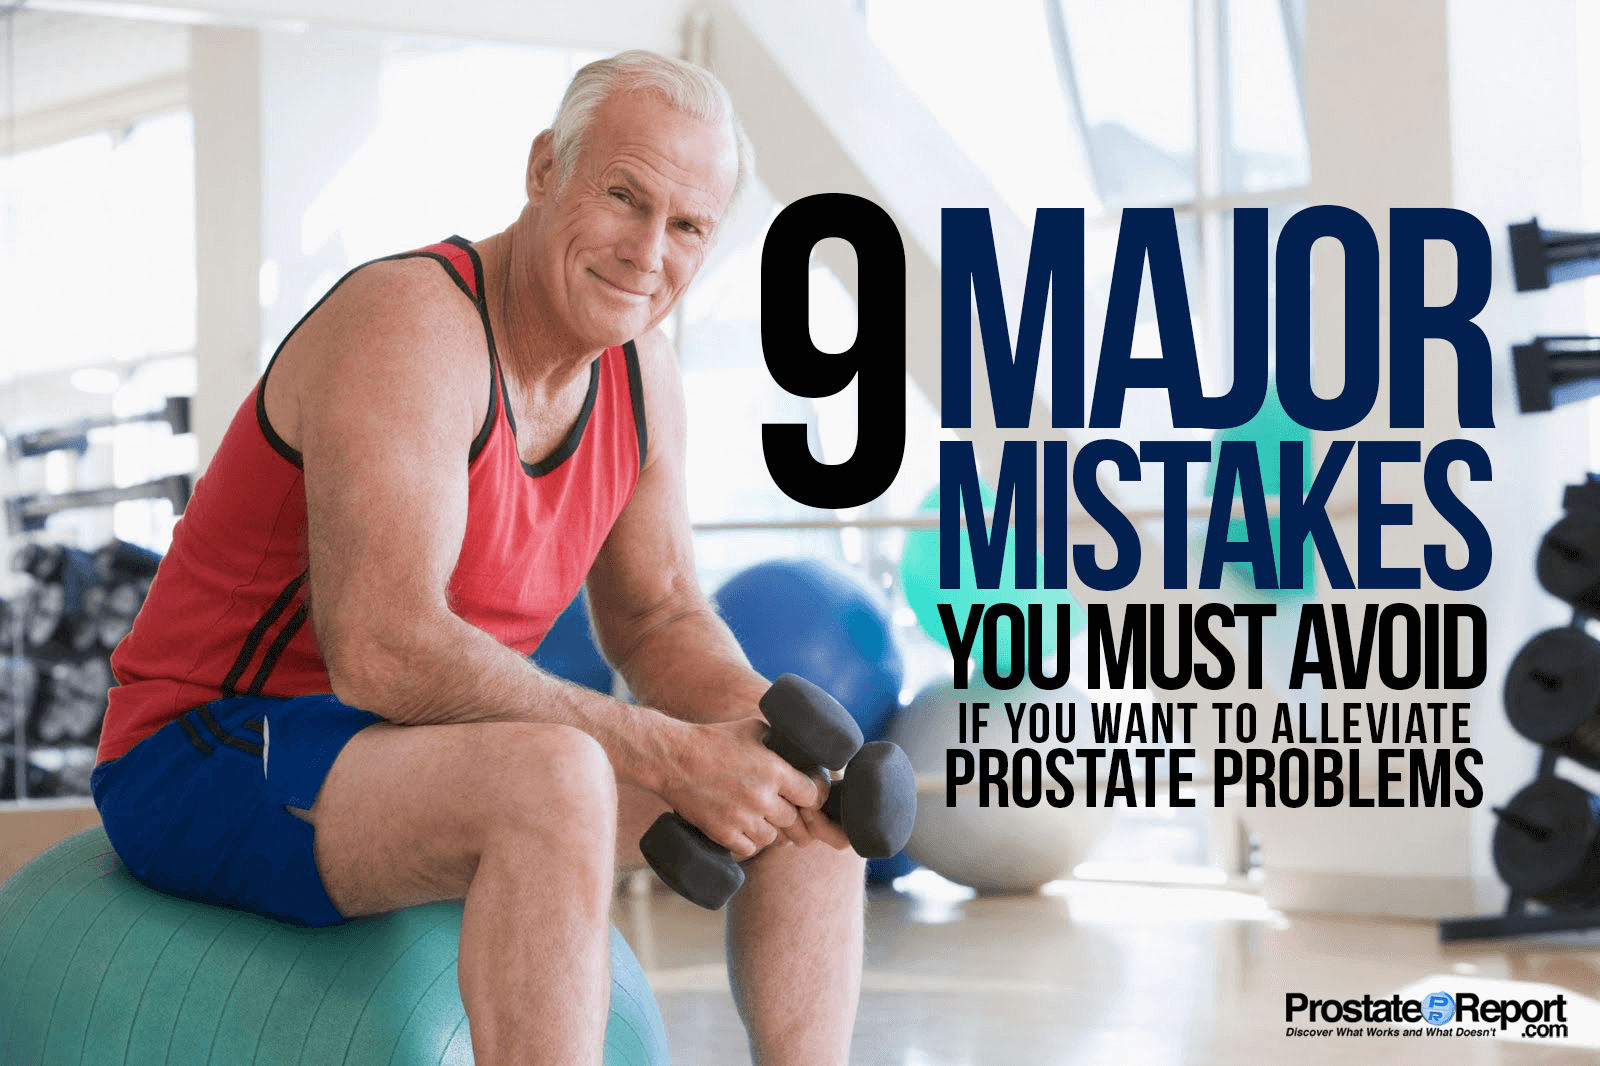 How to avoid the 9 major mistakes of prosat